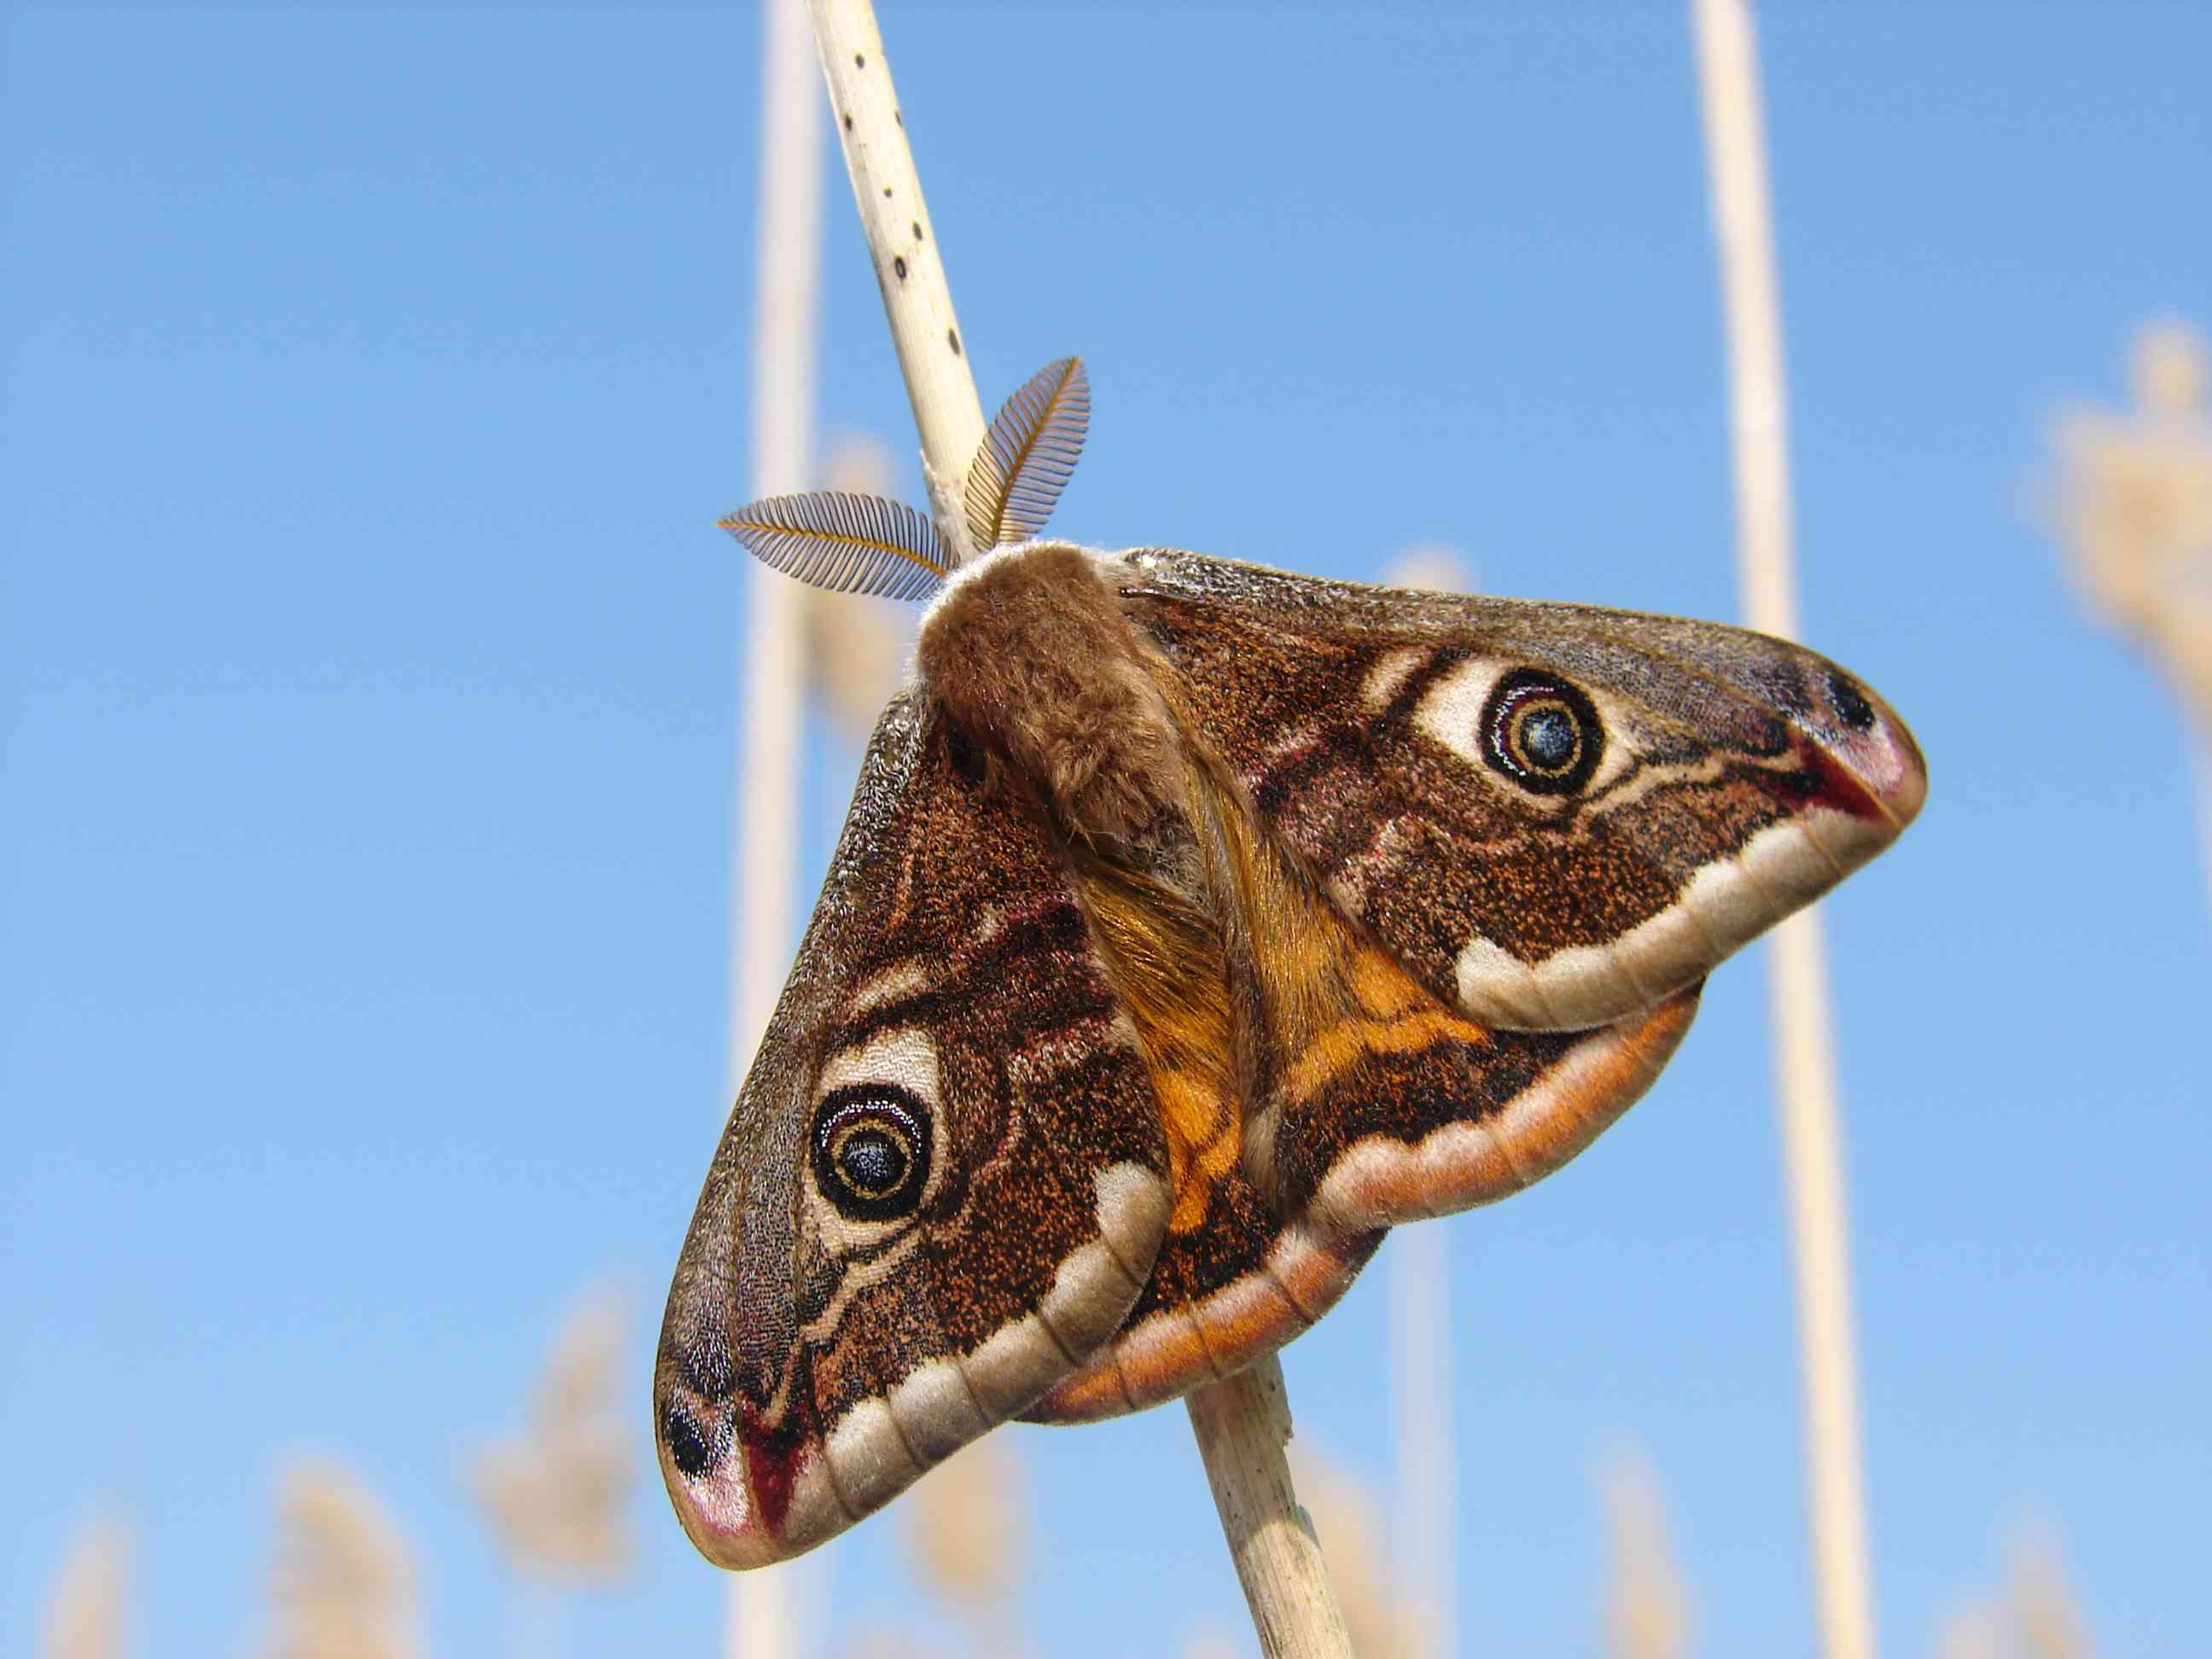 A brown moth with blue eyespots clings to a twig in front of a blue sky